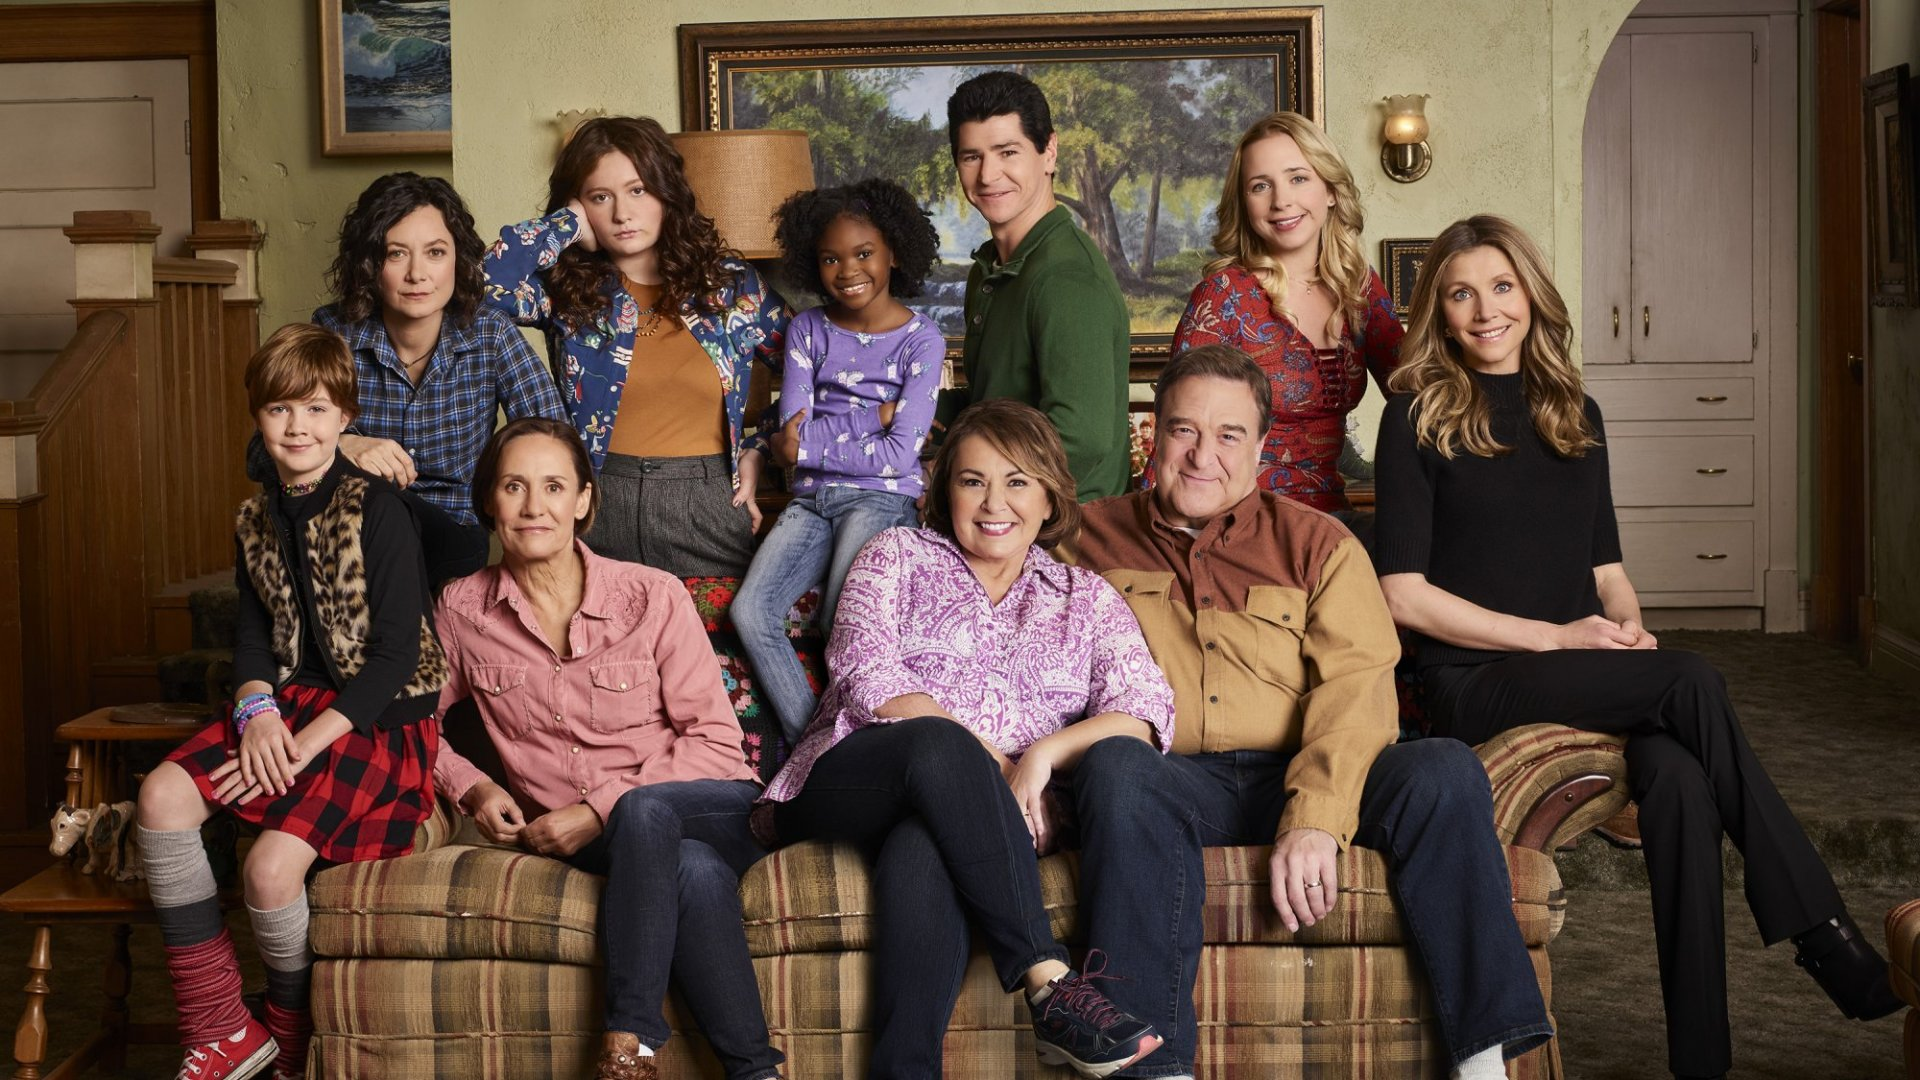 Roseanne Cost Her Co-workers Their Jobs, Here's Why You Could (Easily) Make the Same Mistake Too